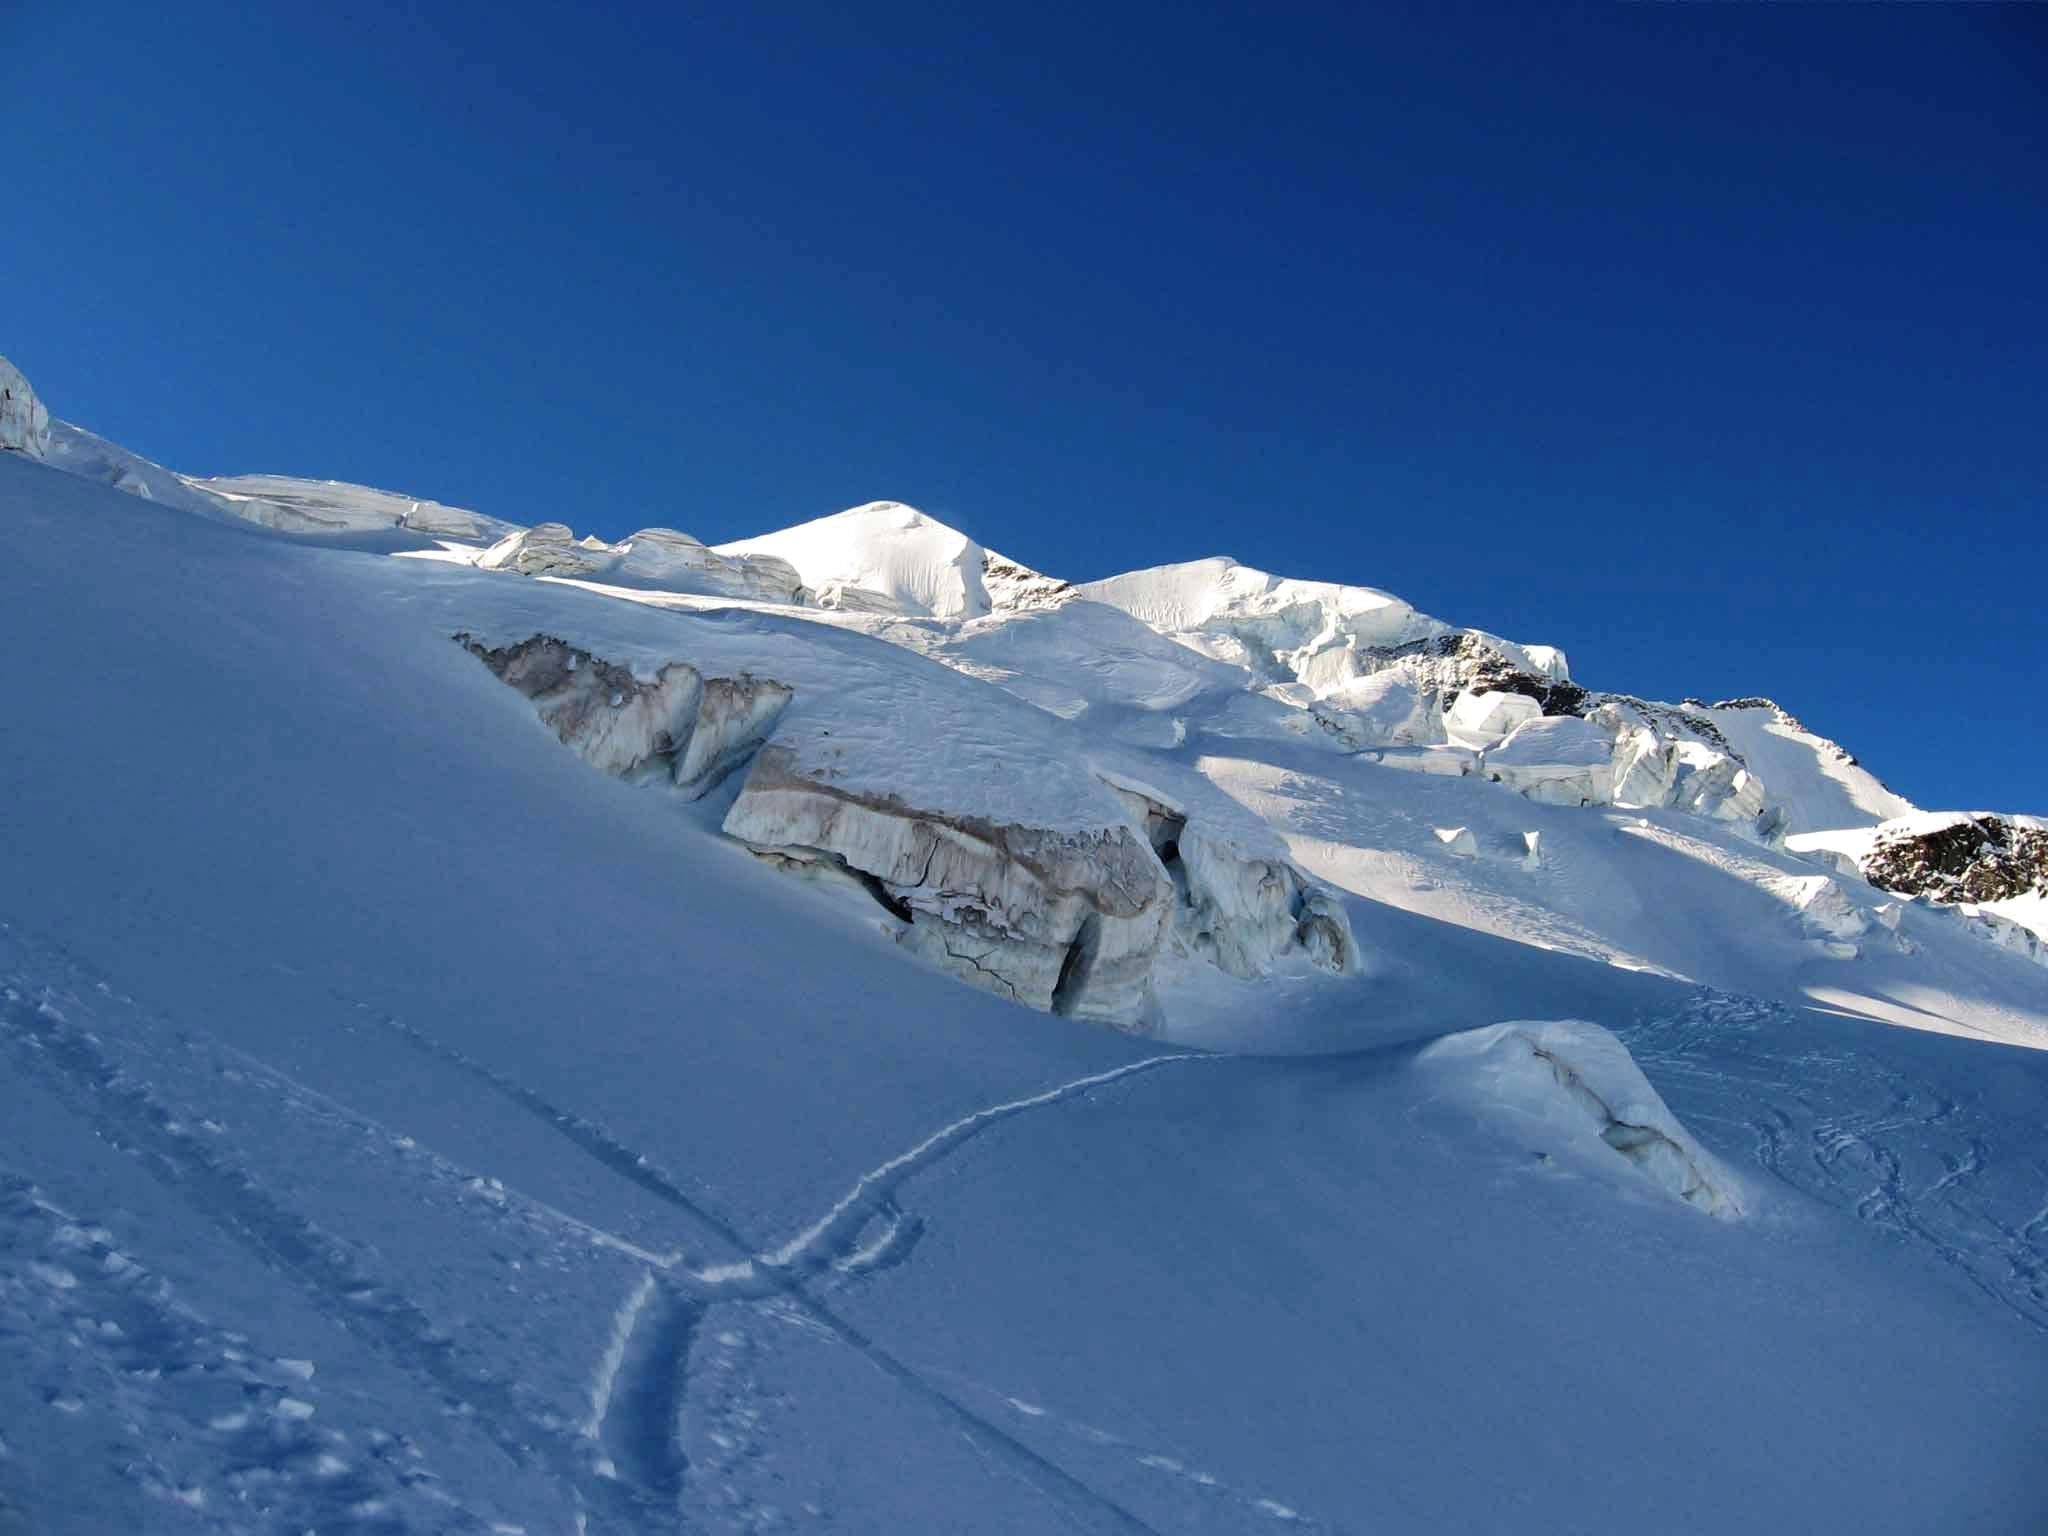 Ski route from Diavolezza